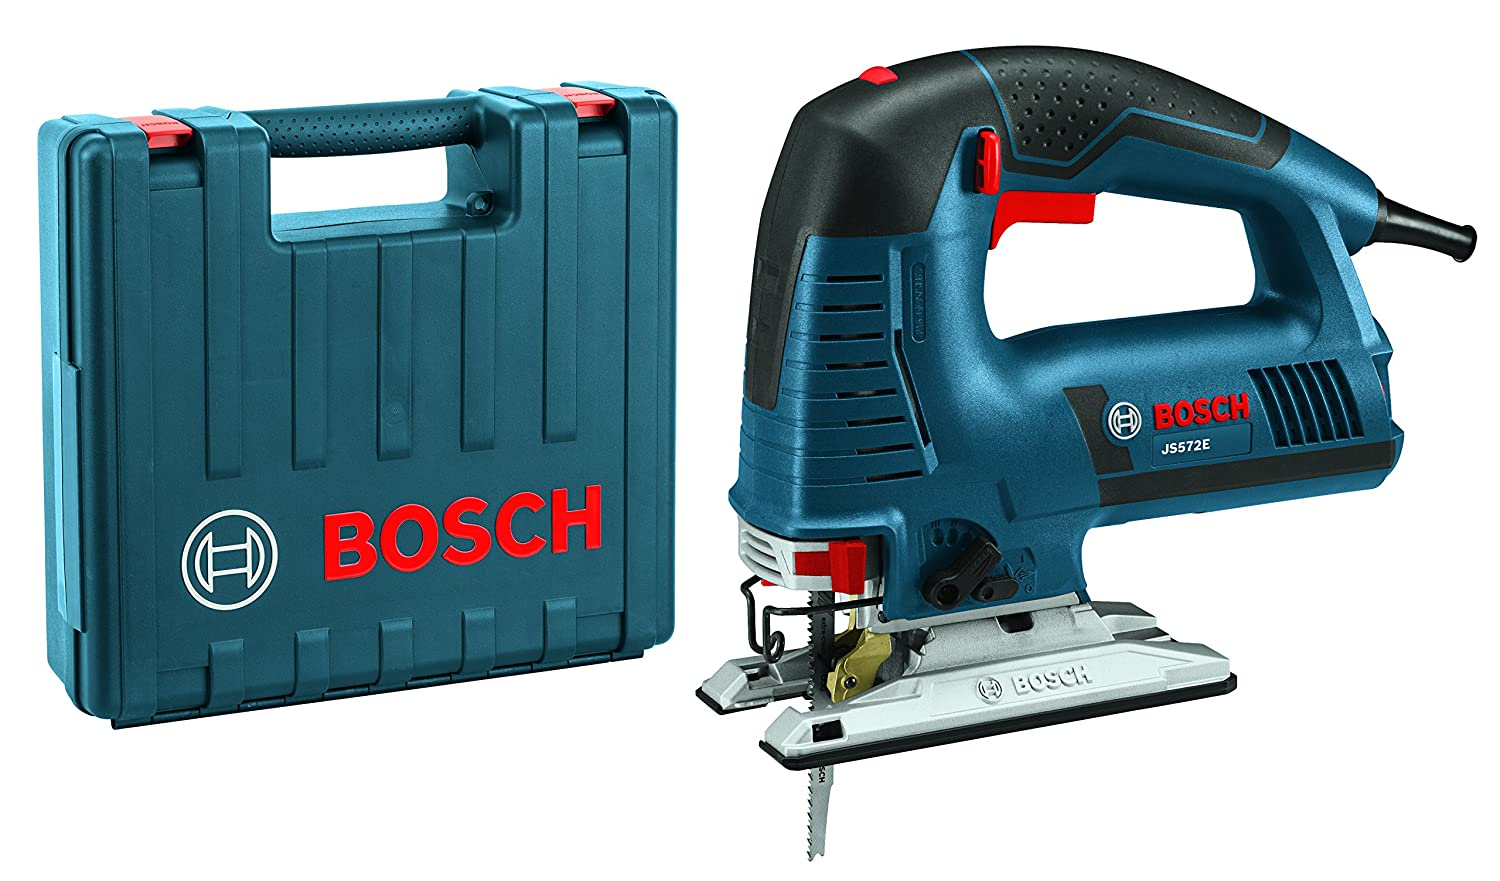 Bosch Power Tools Jigsaw Kit – JS572EK – 7.2 Amp Corded Variable Speed Top-Handle Jig Saw Kit with Assorted Blades and Carrying Case